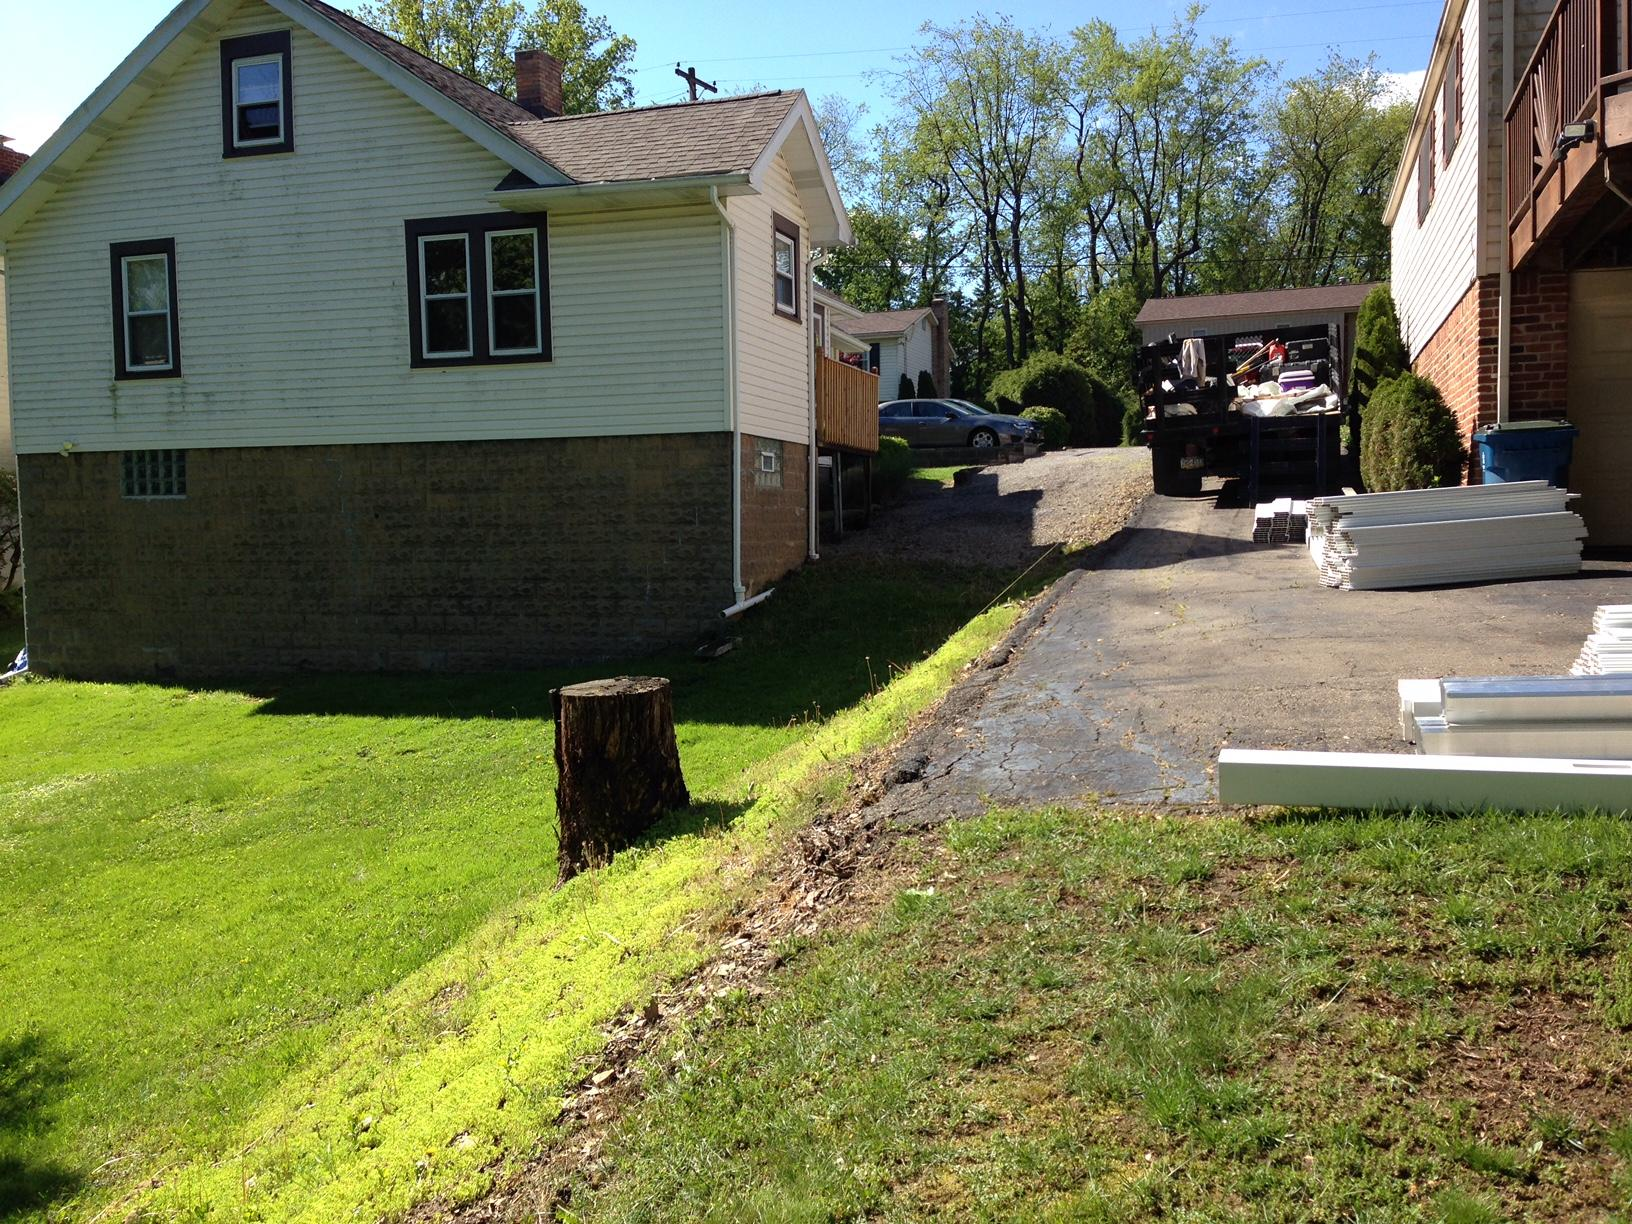 Vinyl Privacy Fence Installation in Glenshaw, PA - Before Photo